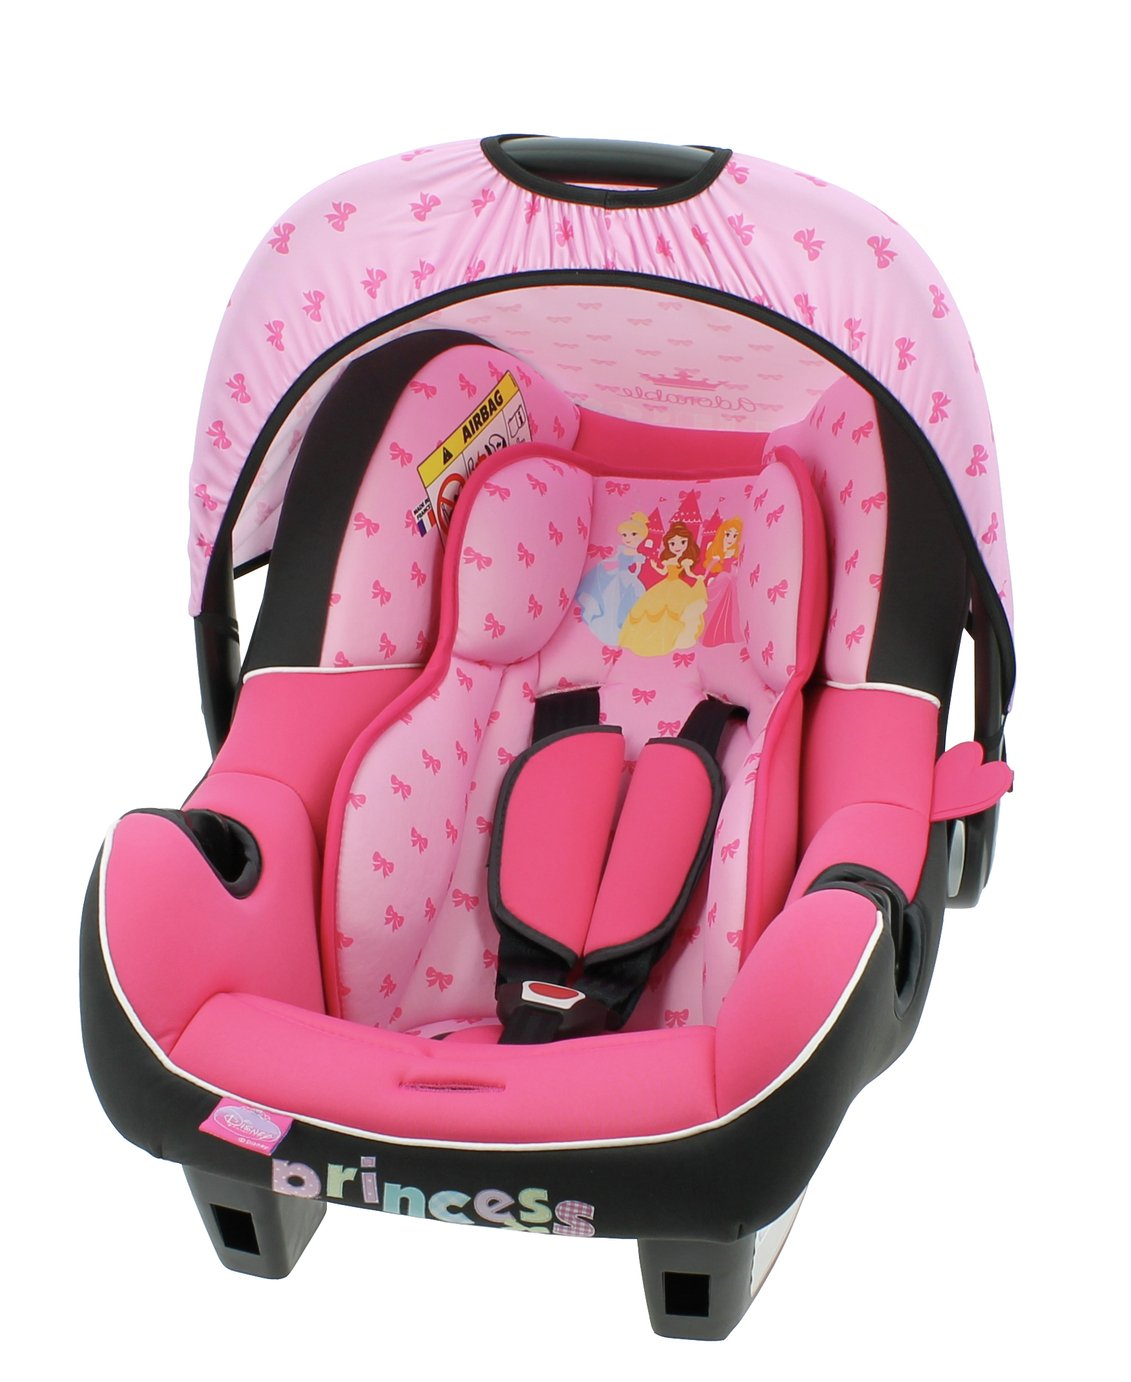 Disney Princess Beone Group 0+ Baby Carrier - Pink